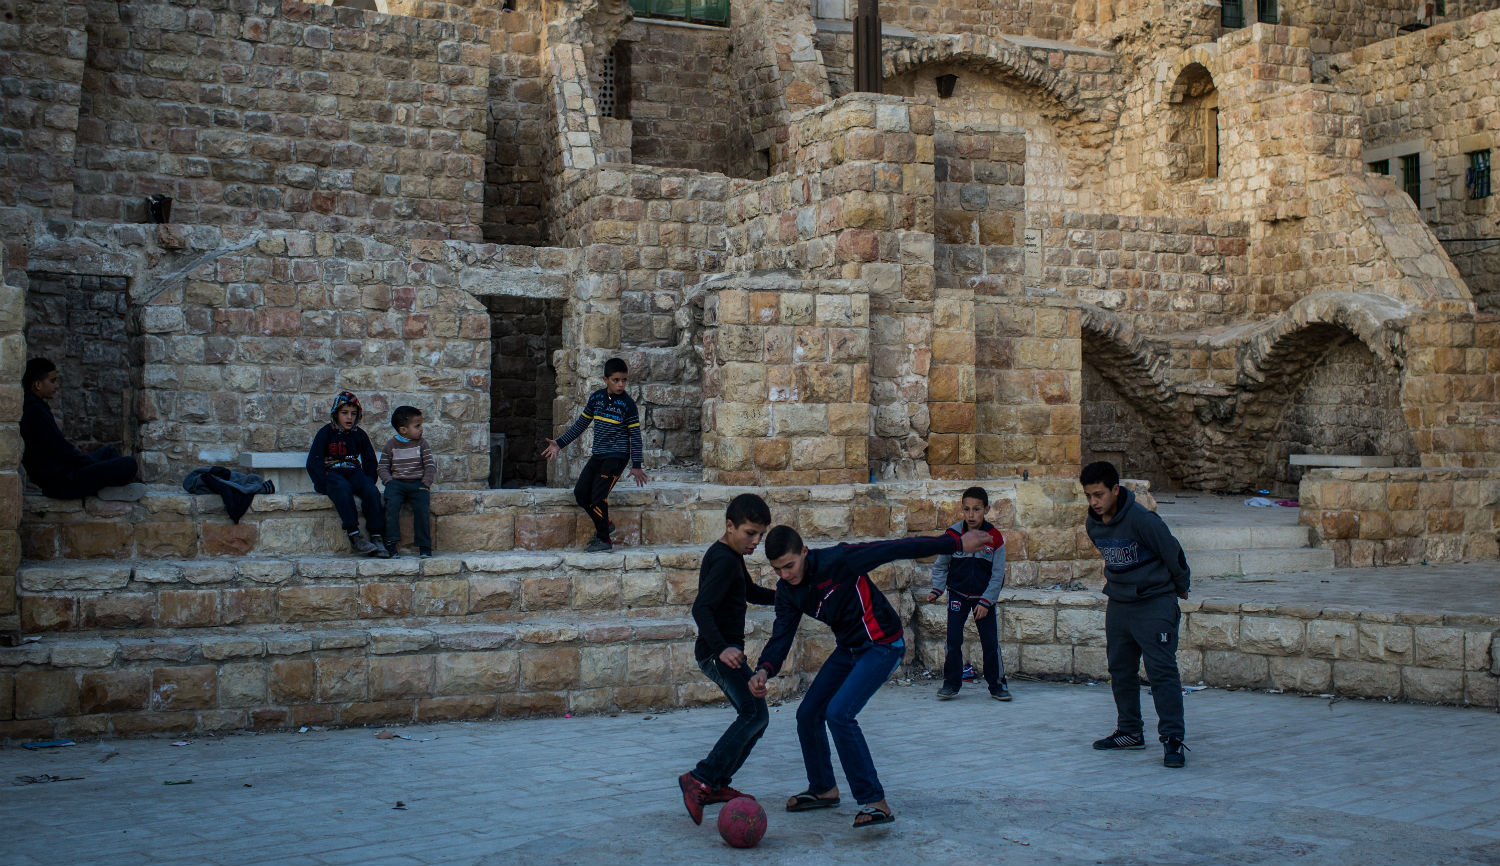 Palestinian boys playing soccer in the West Bank city of Hebron. Chris McGrath/Getty Images.